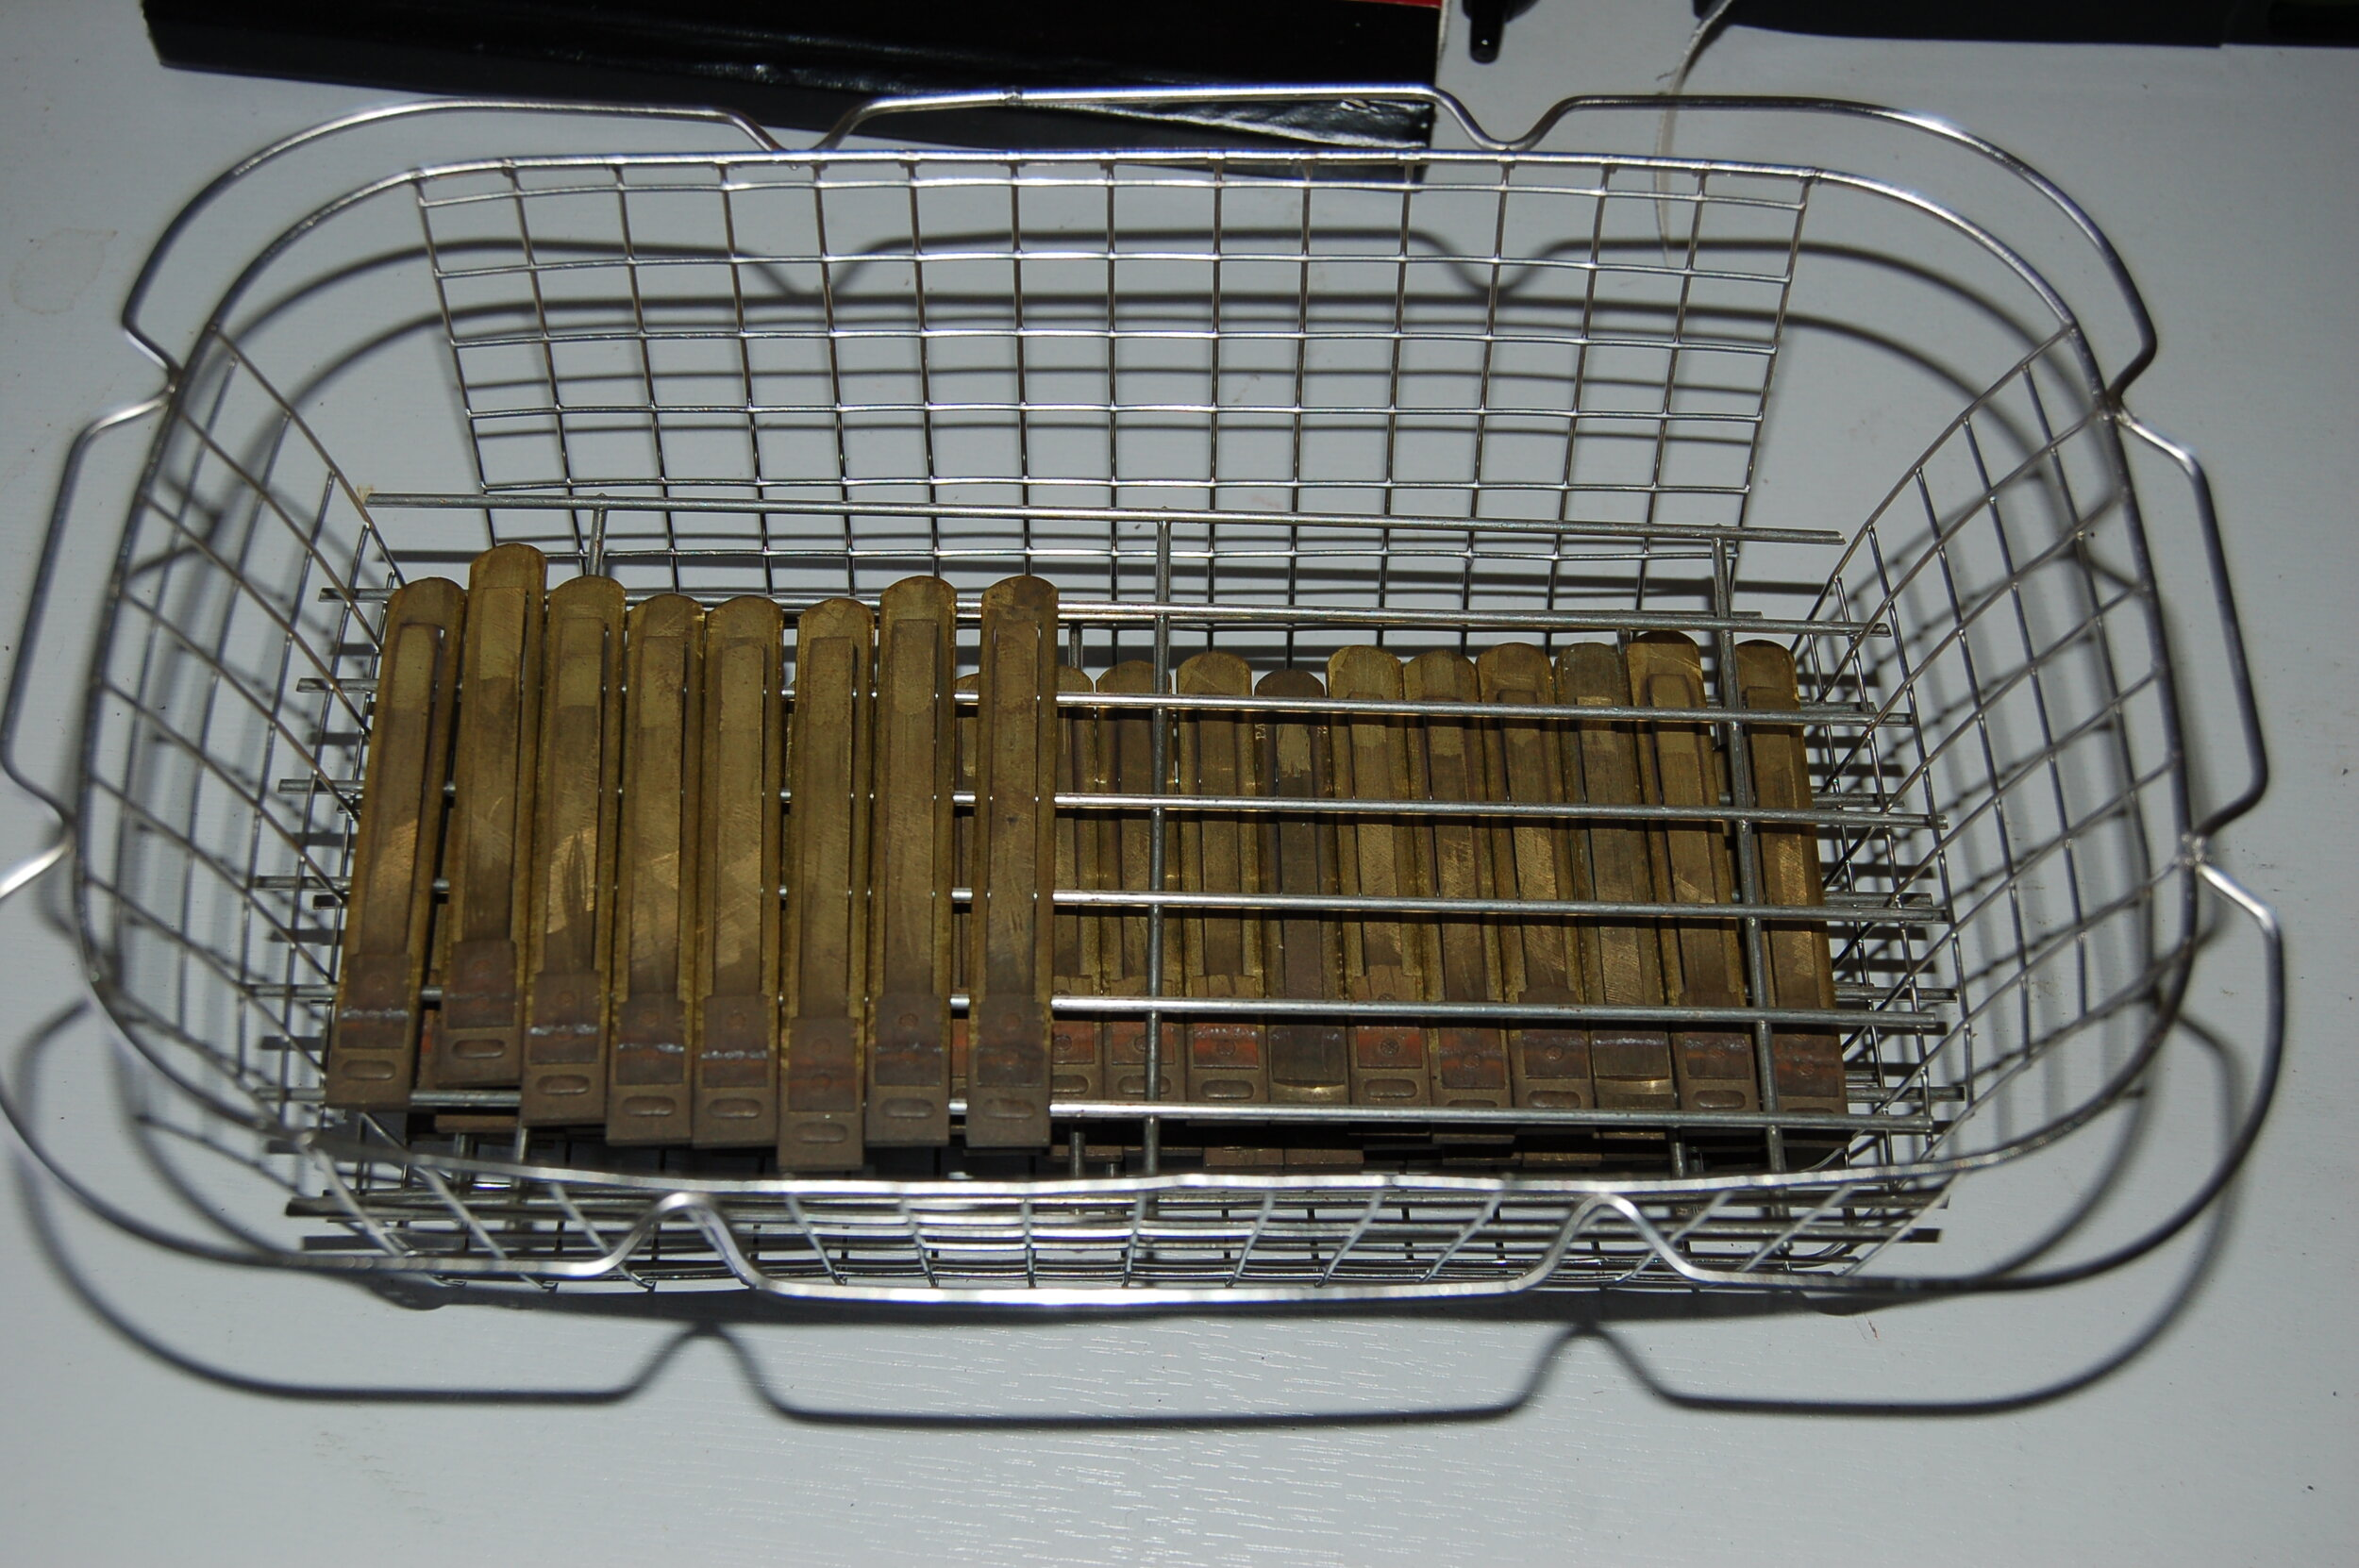 Reeds prepared for the ultrasonic cleaner